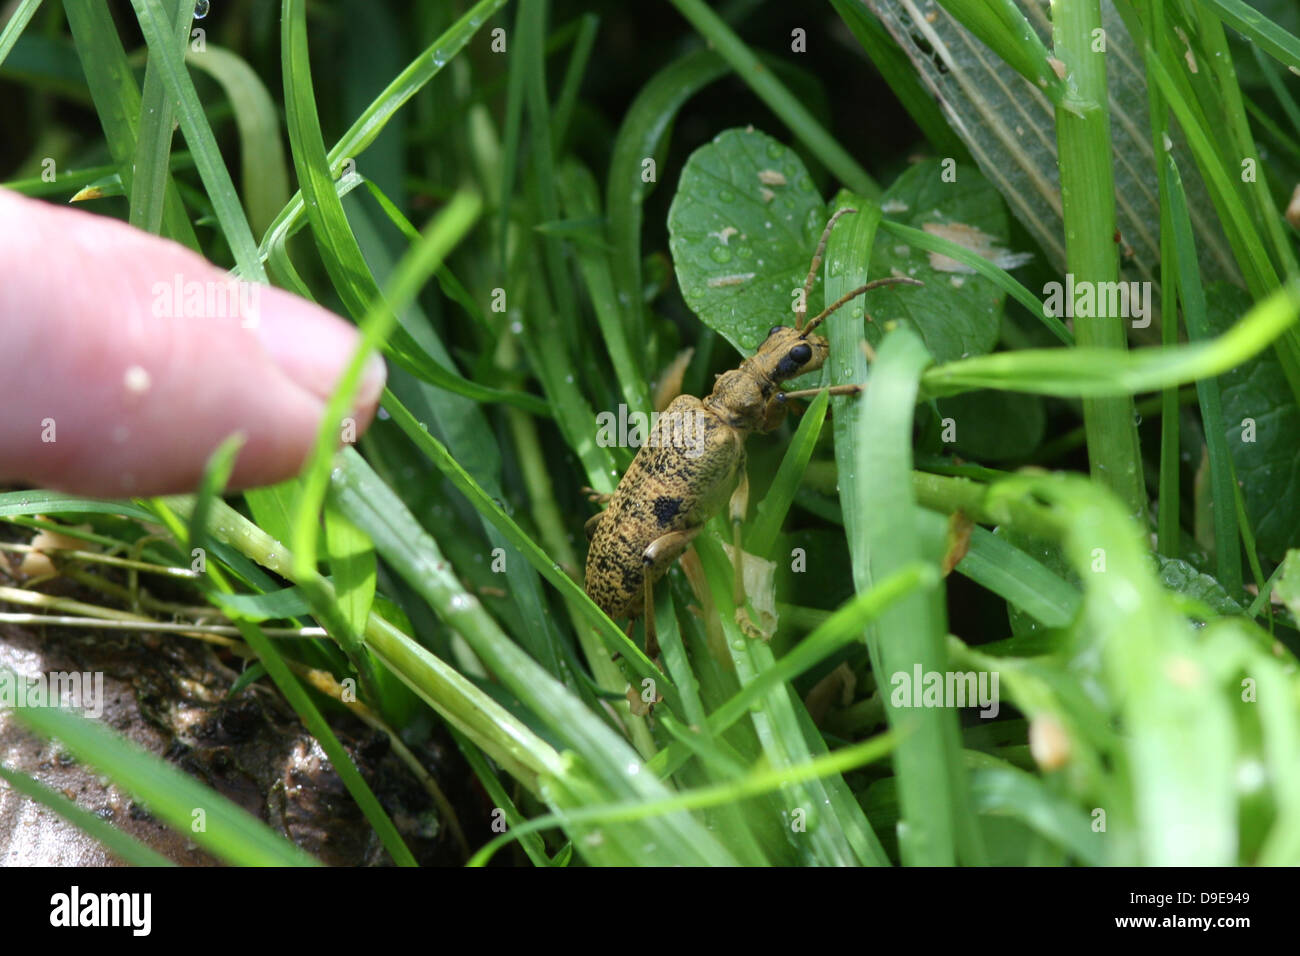 A longhorn beetle Latin name Rhaguim mordax, in grass that is pointed out by a  adult female finger, - Stock Image